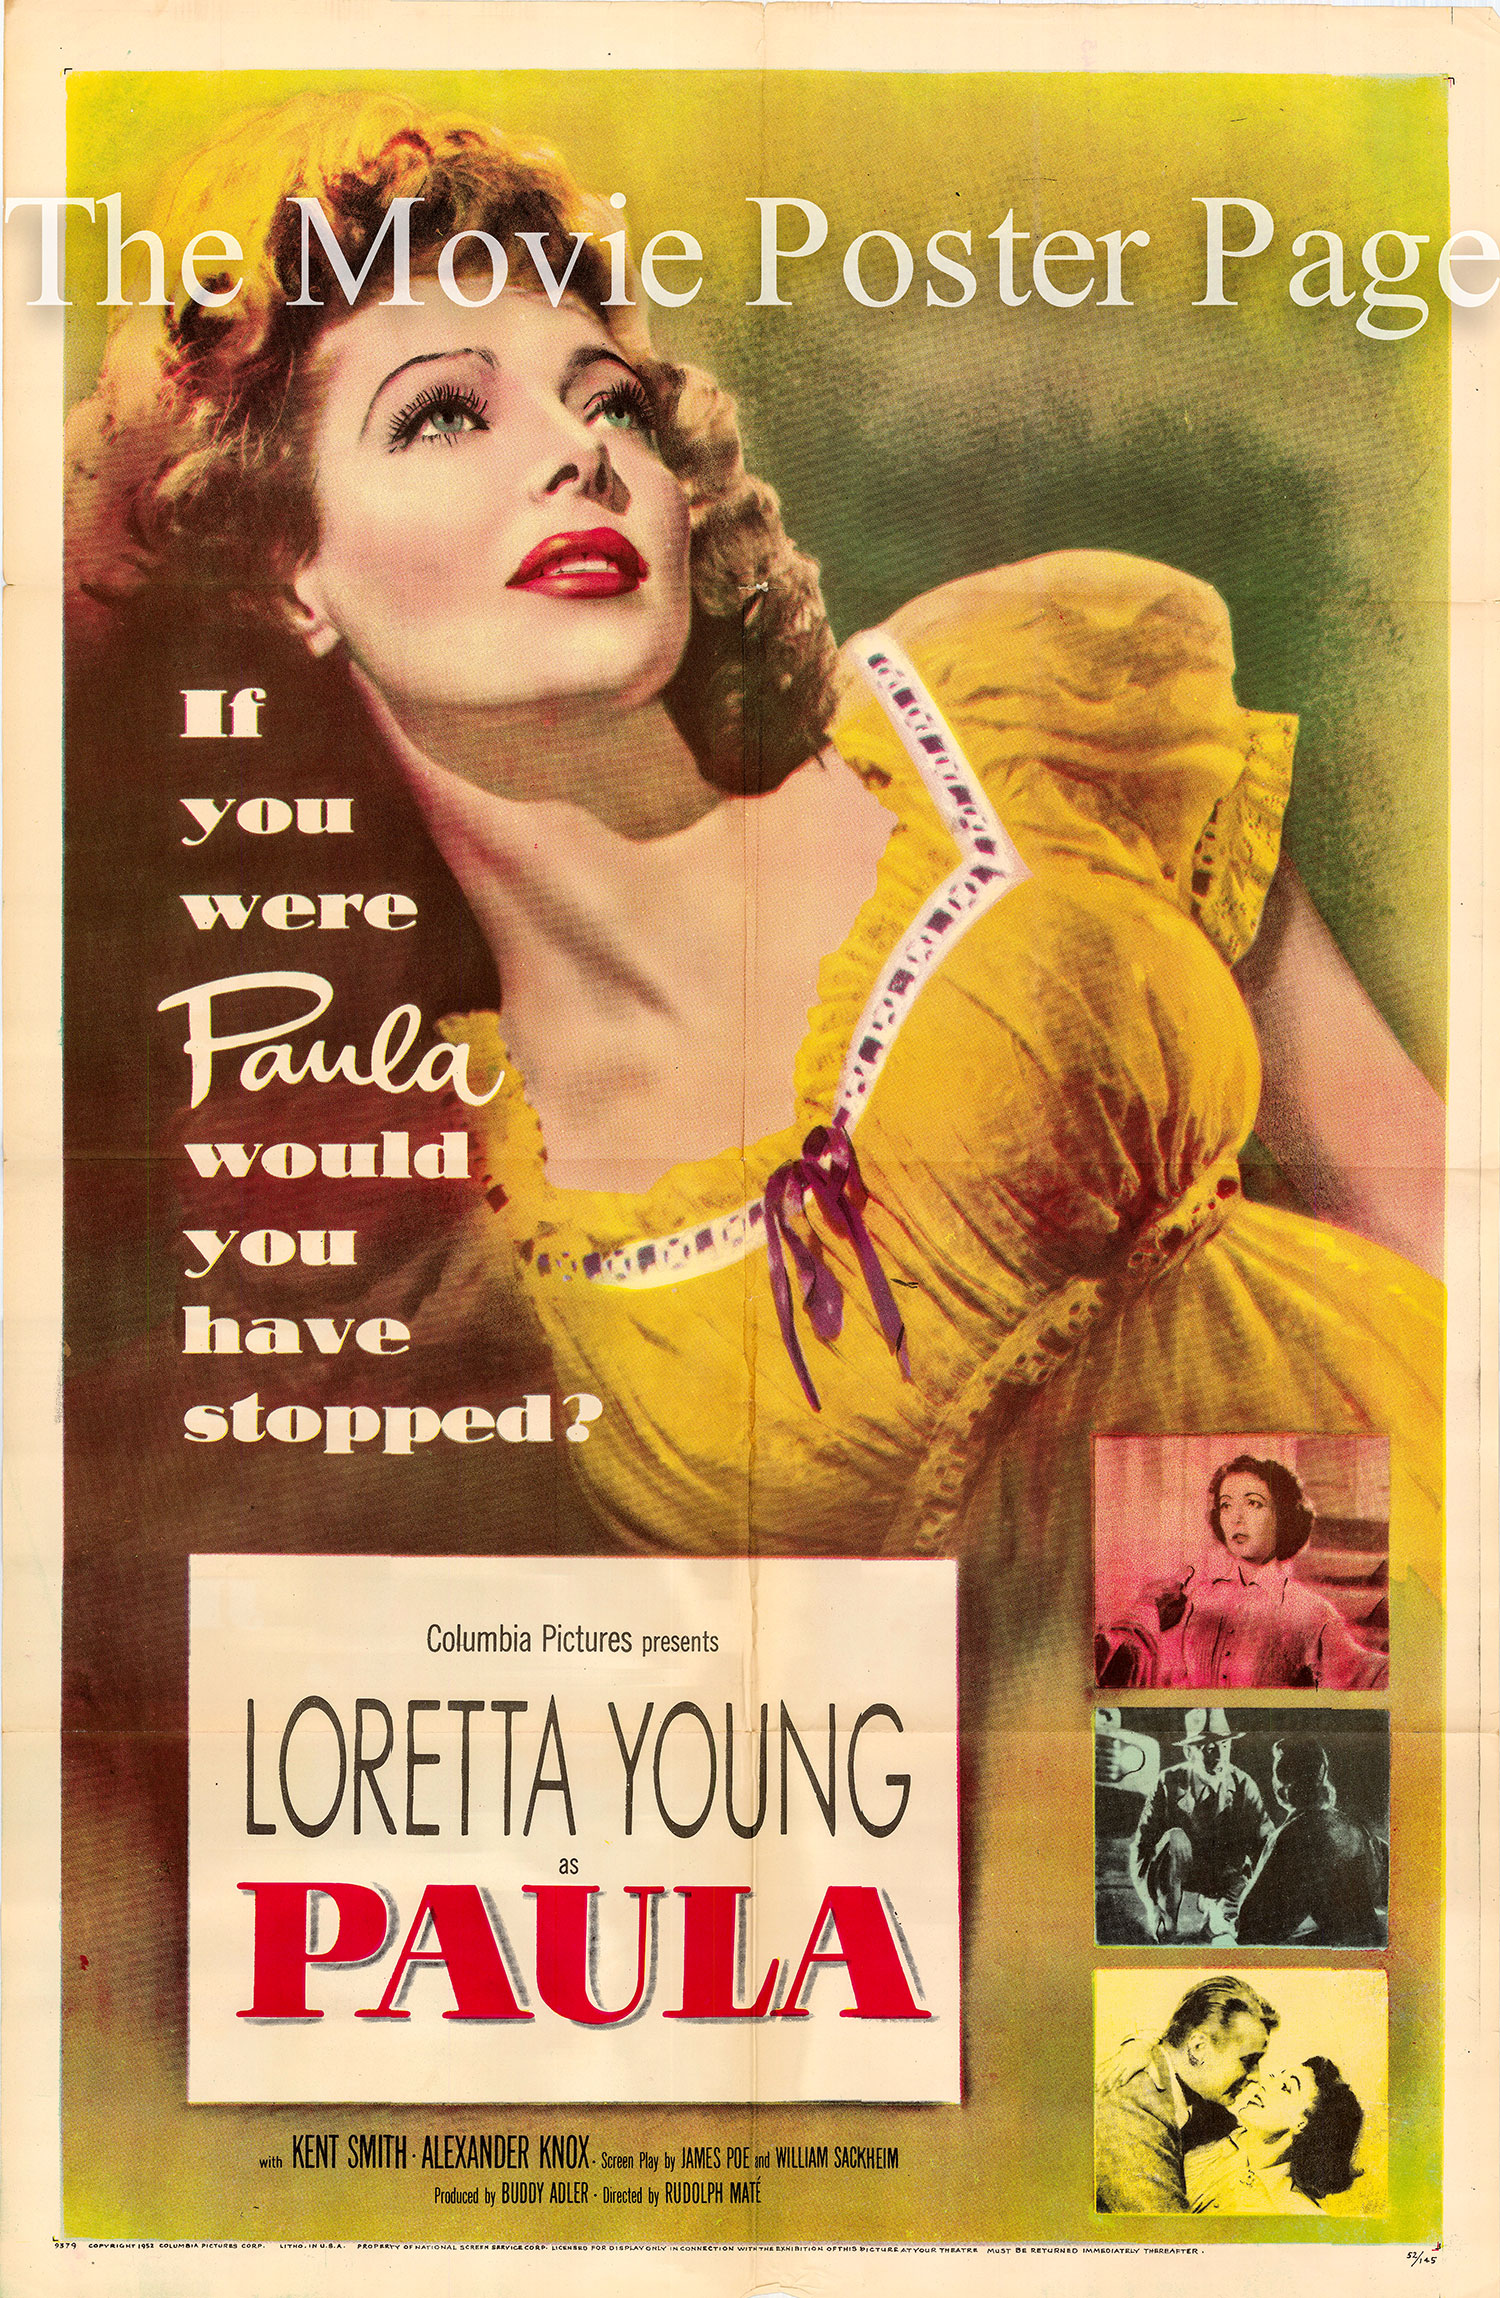 Pictured is a US one-sheet promotional poster for the 1952 Rudolph Mate film Paula starring Loretta Young.